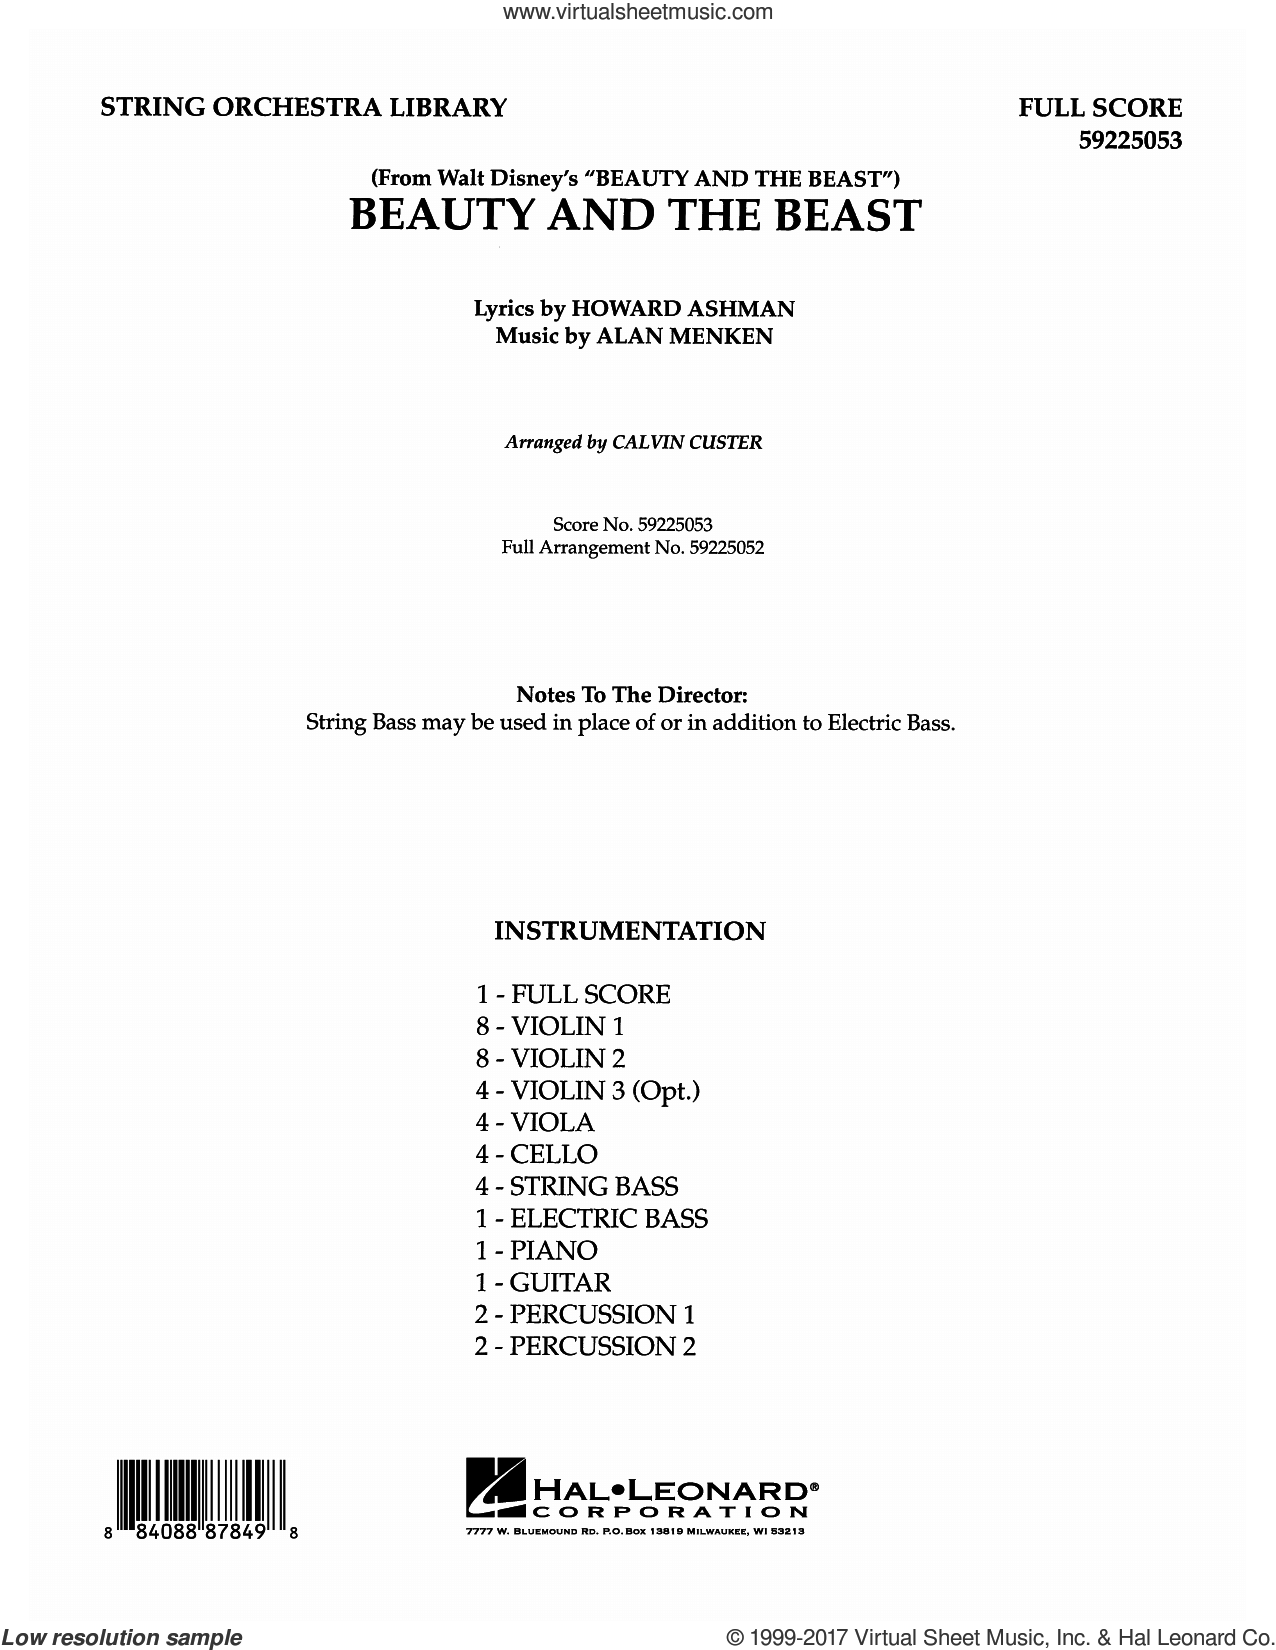 Beauty and the Beast (COMPLETE) sheet music for orchestra by Alan Menken, Calvin Custer, Celine Dion & Peabo Bryson and Howard Ashman, intermediate. Score Image Preview.